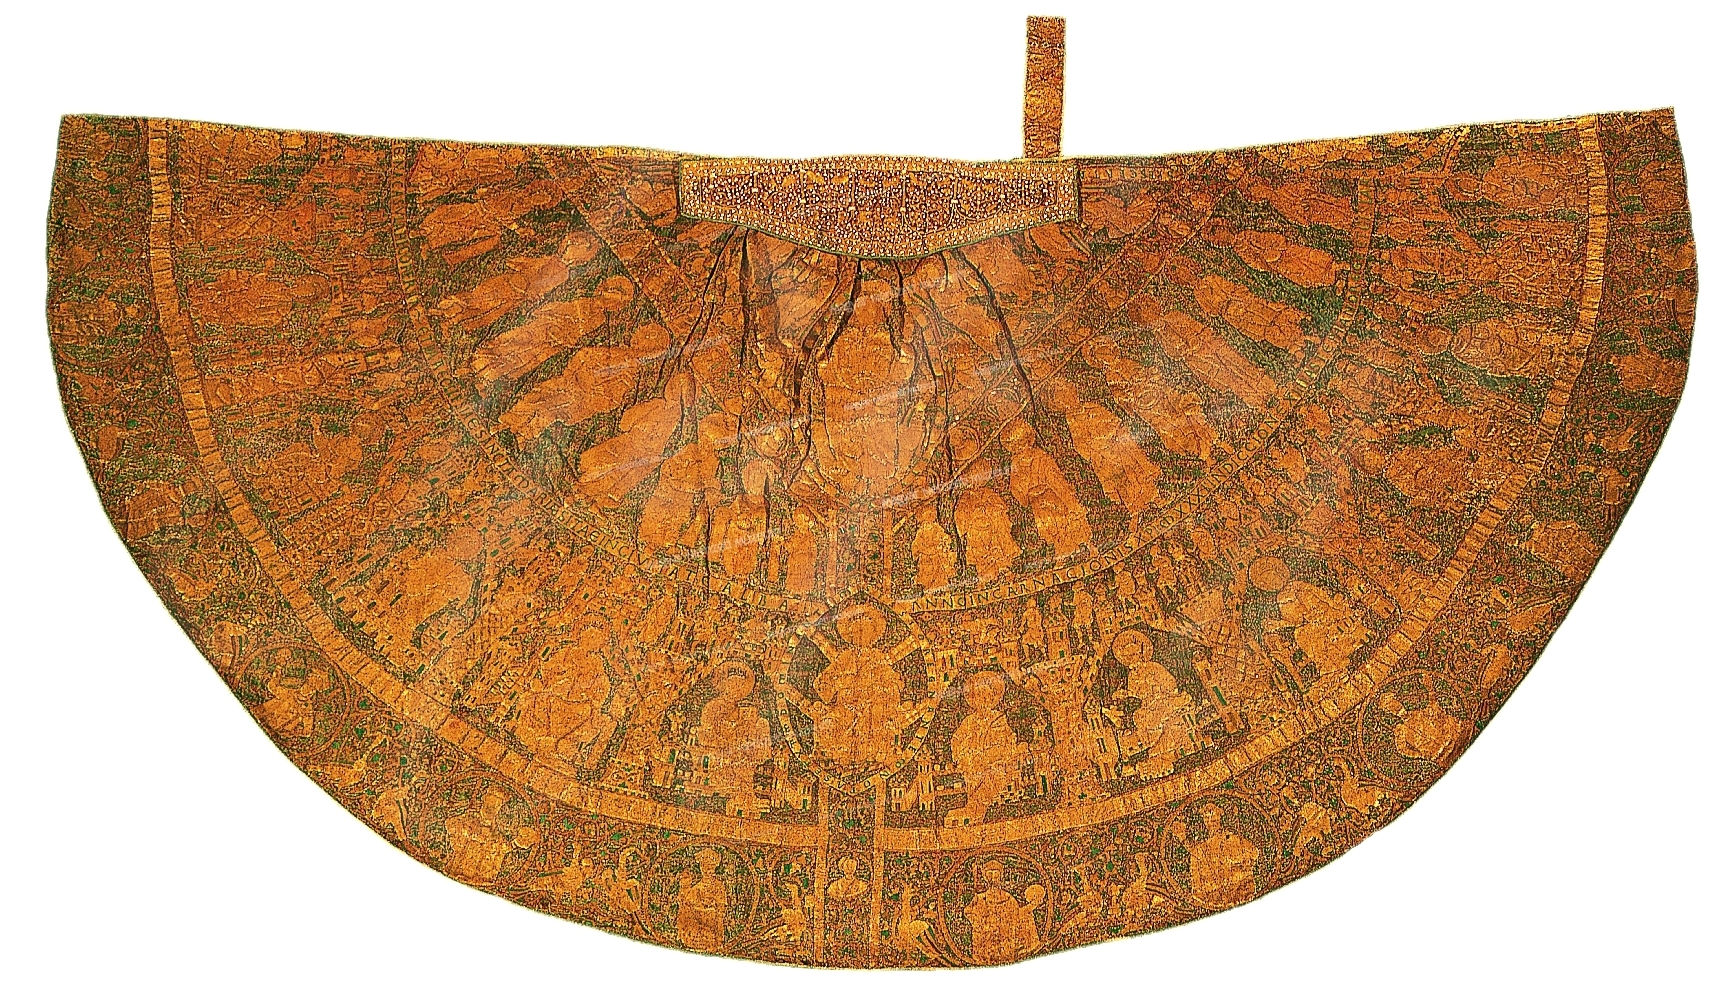 The Hungarian Coronation Mantle was used in the coronation of Kings for 885 years from 1031 to 1916. The mantle is housed in the Hungarian National Museum, Budapest. Photo by the Hungarian National Museum.